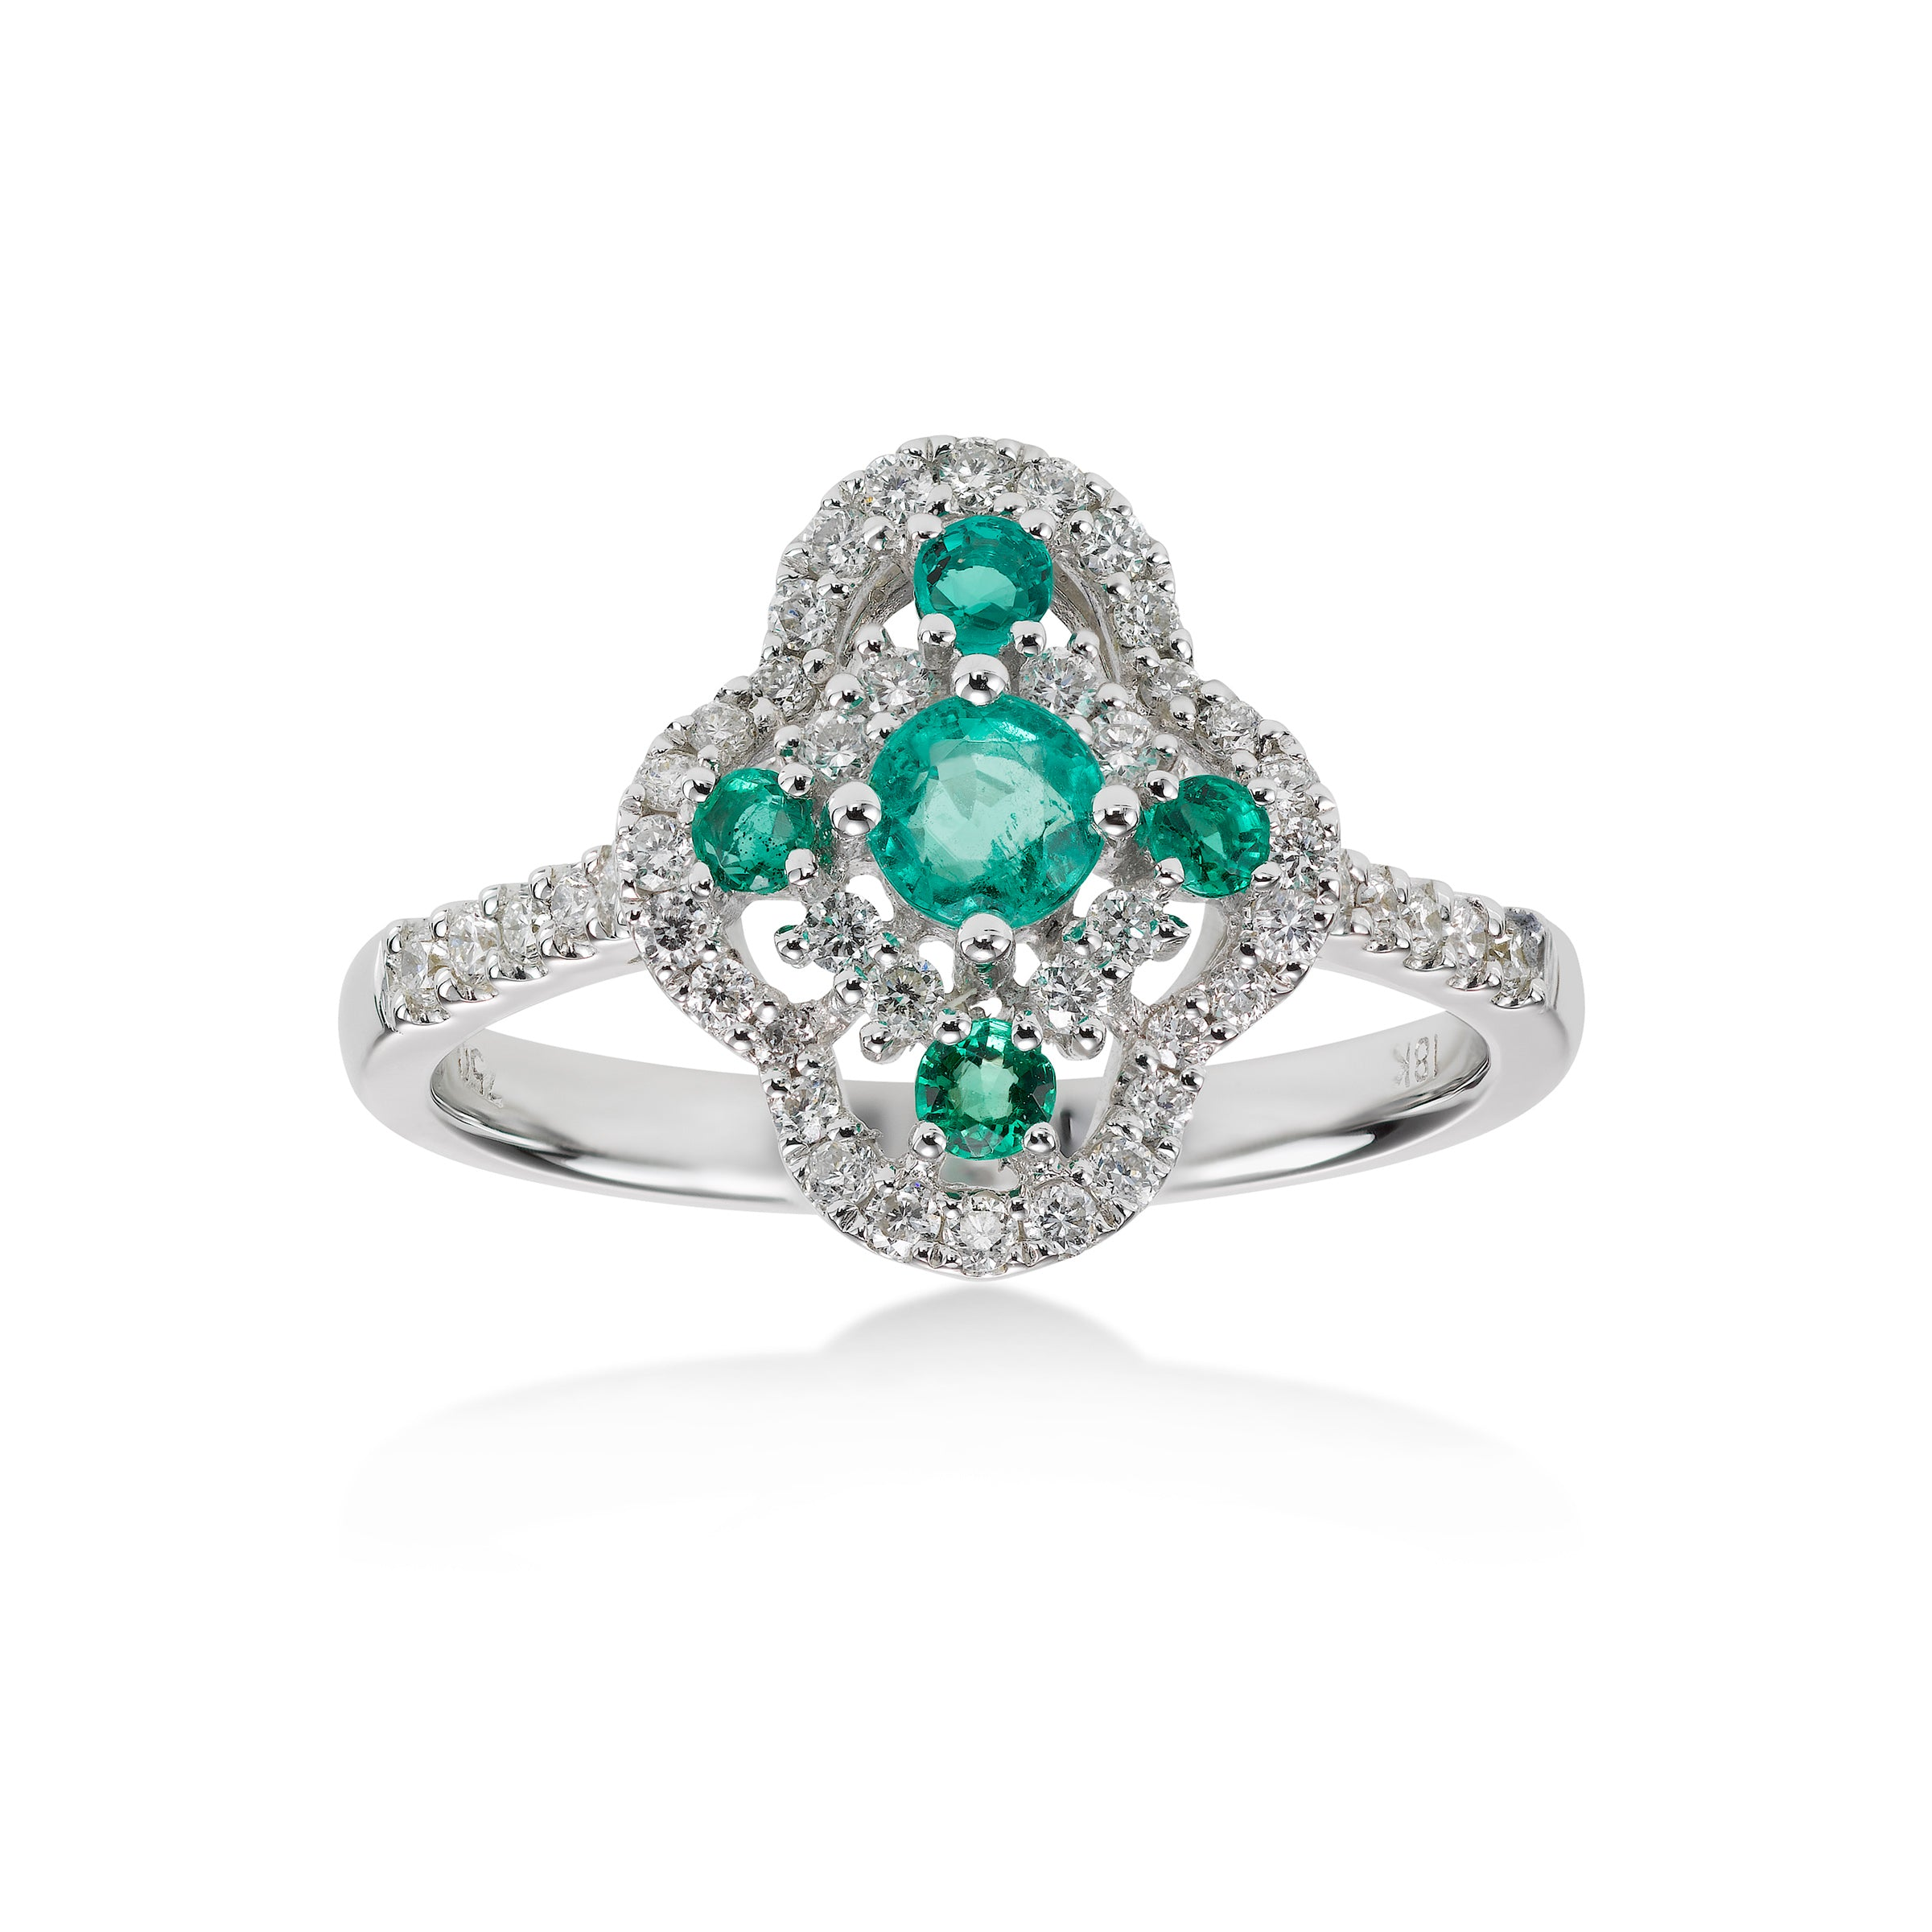 Vintage Style Emerald and Diamond Ring, 18K White Gold